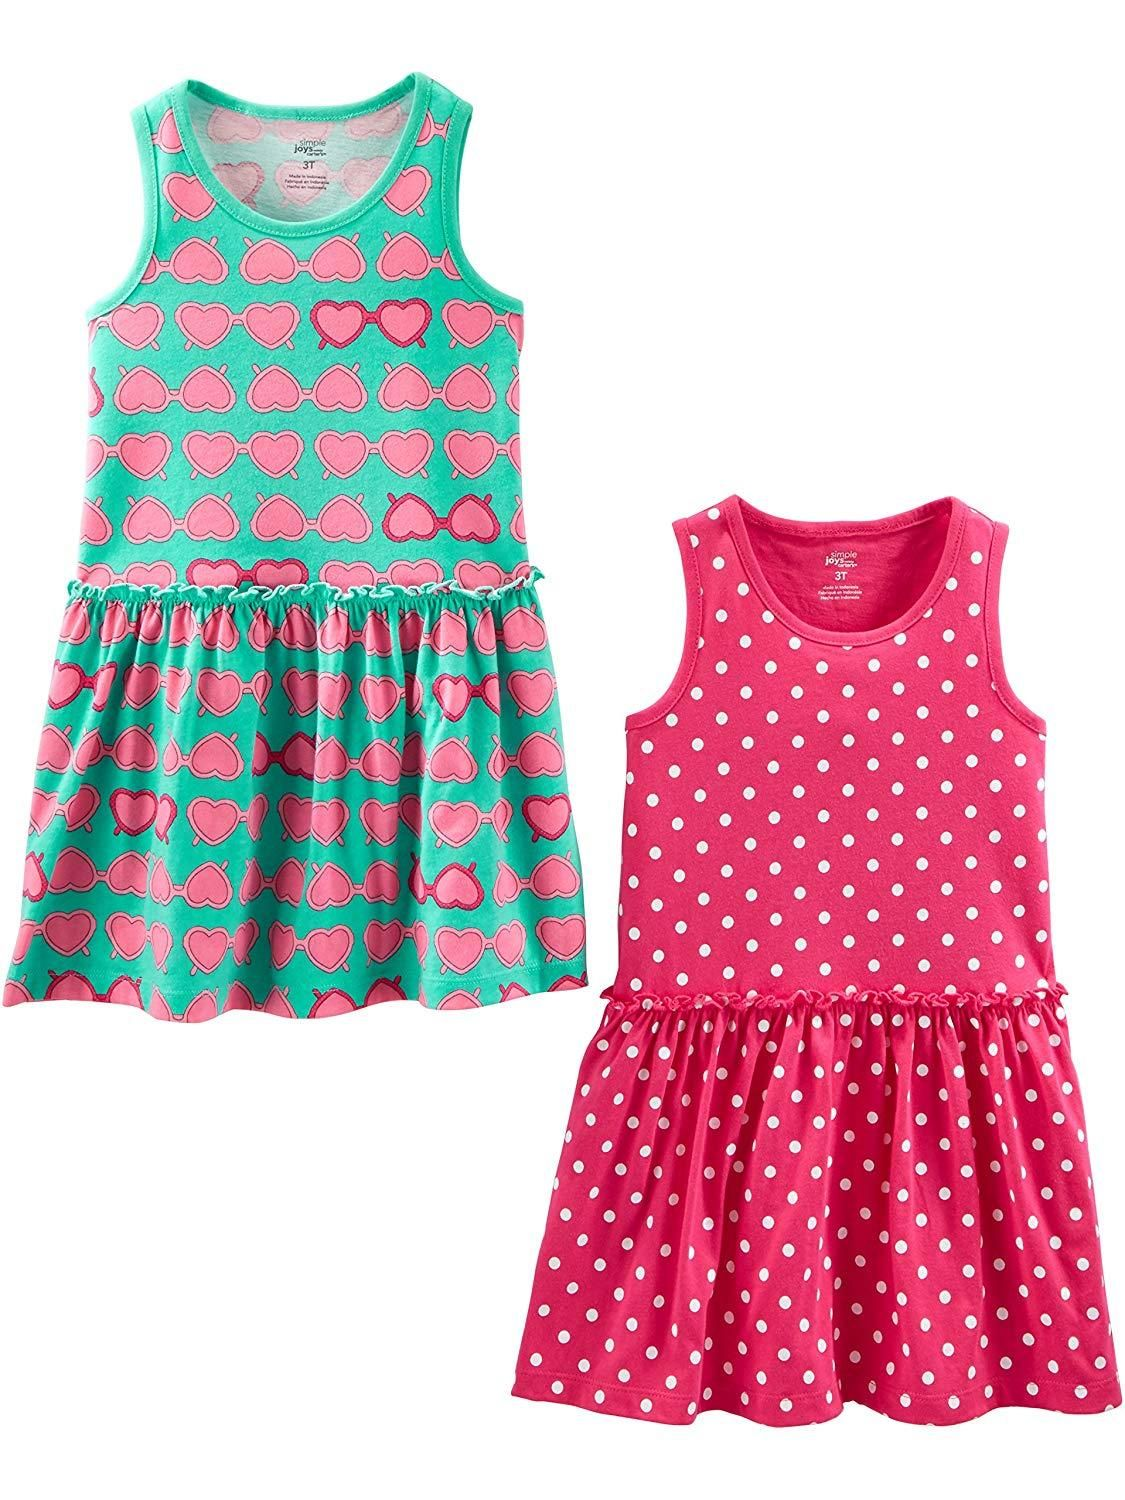 62b99431c44 Simple Joys by Carter's Girls' Baby and Toddler 2-Pack Short-Sleeve ...